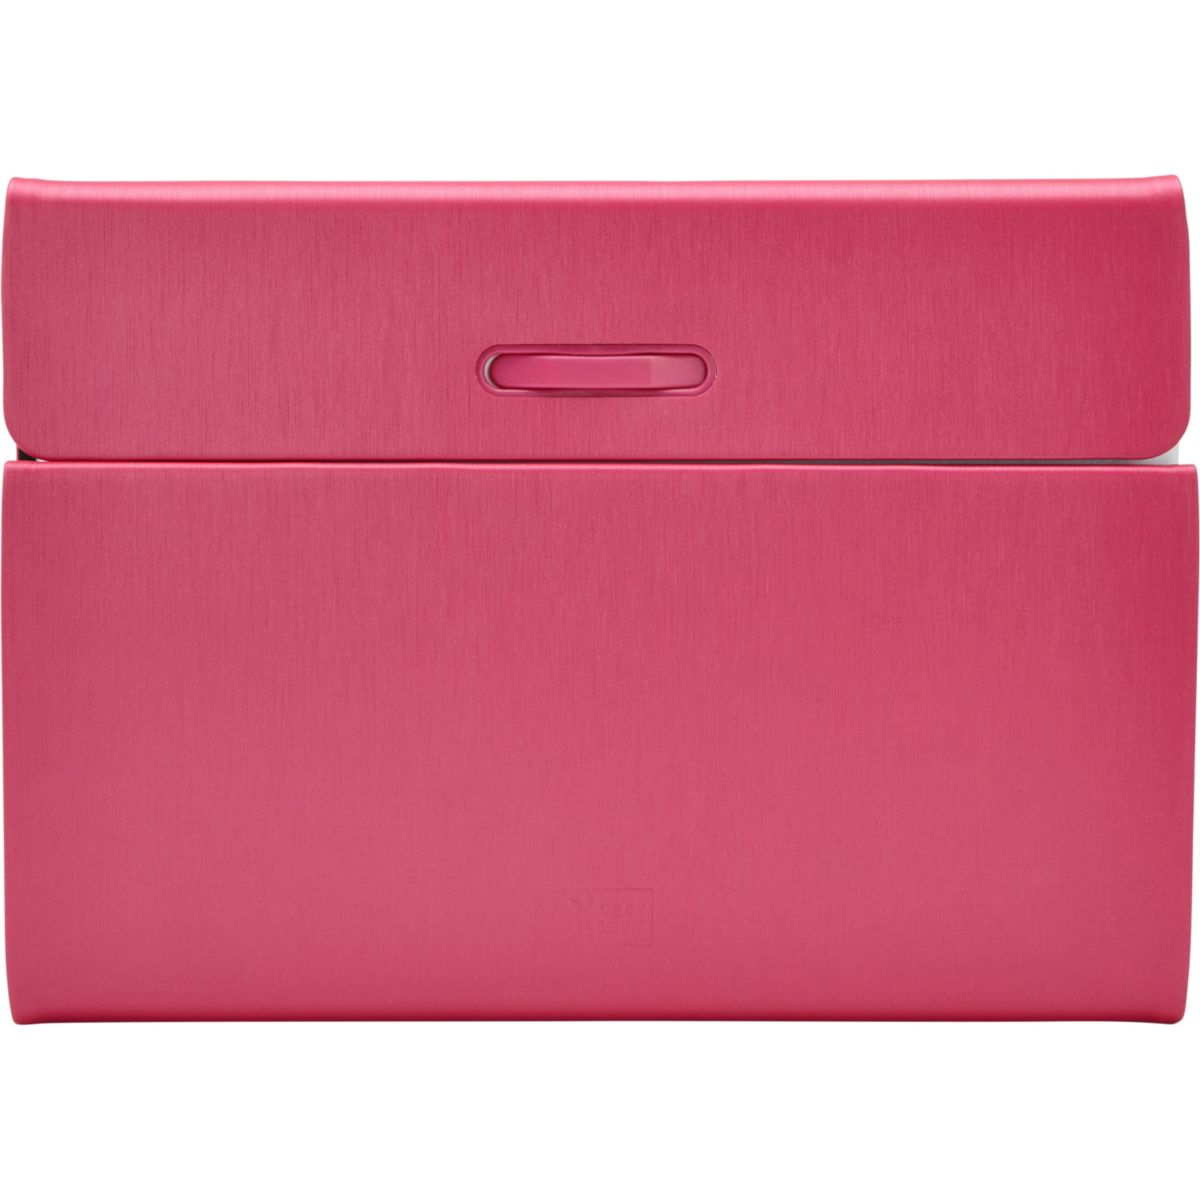 Etui CASELOGIC iPad Air 2 rose (photo)